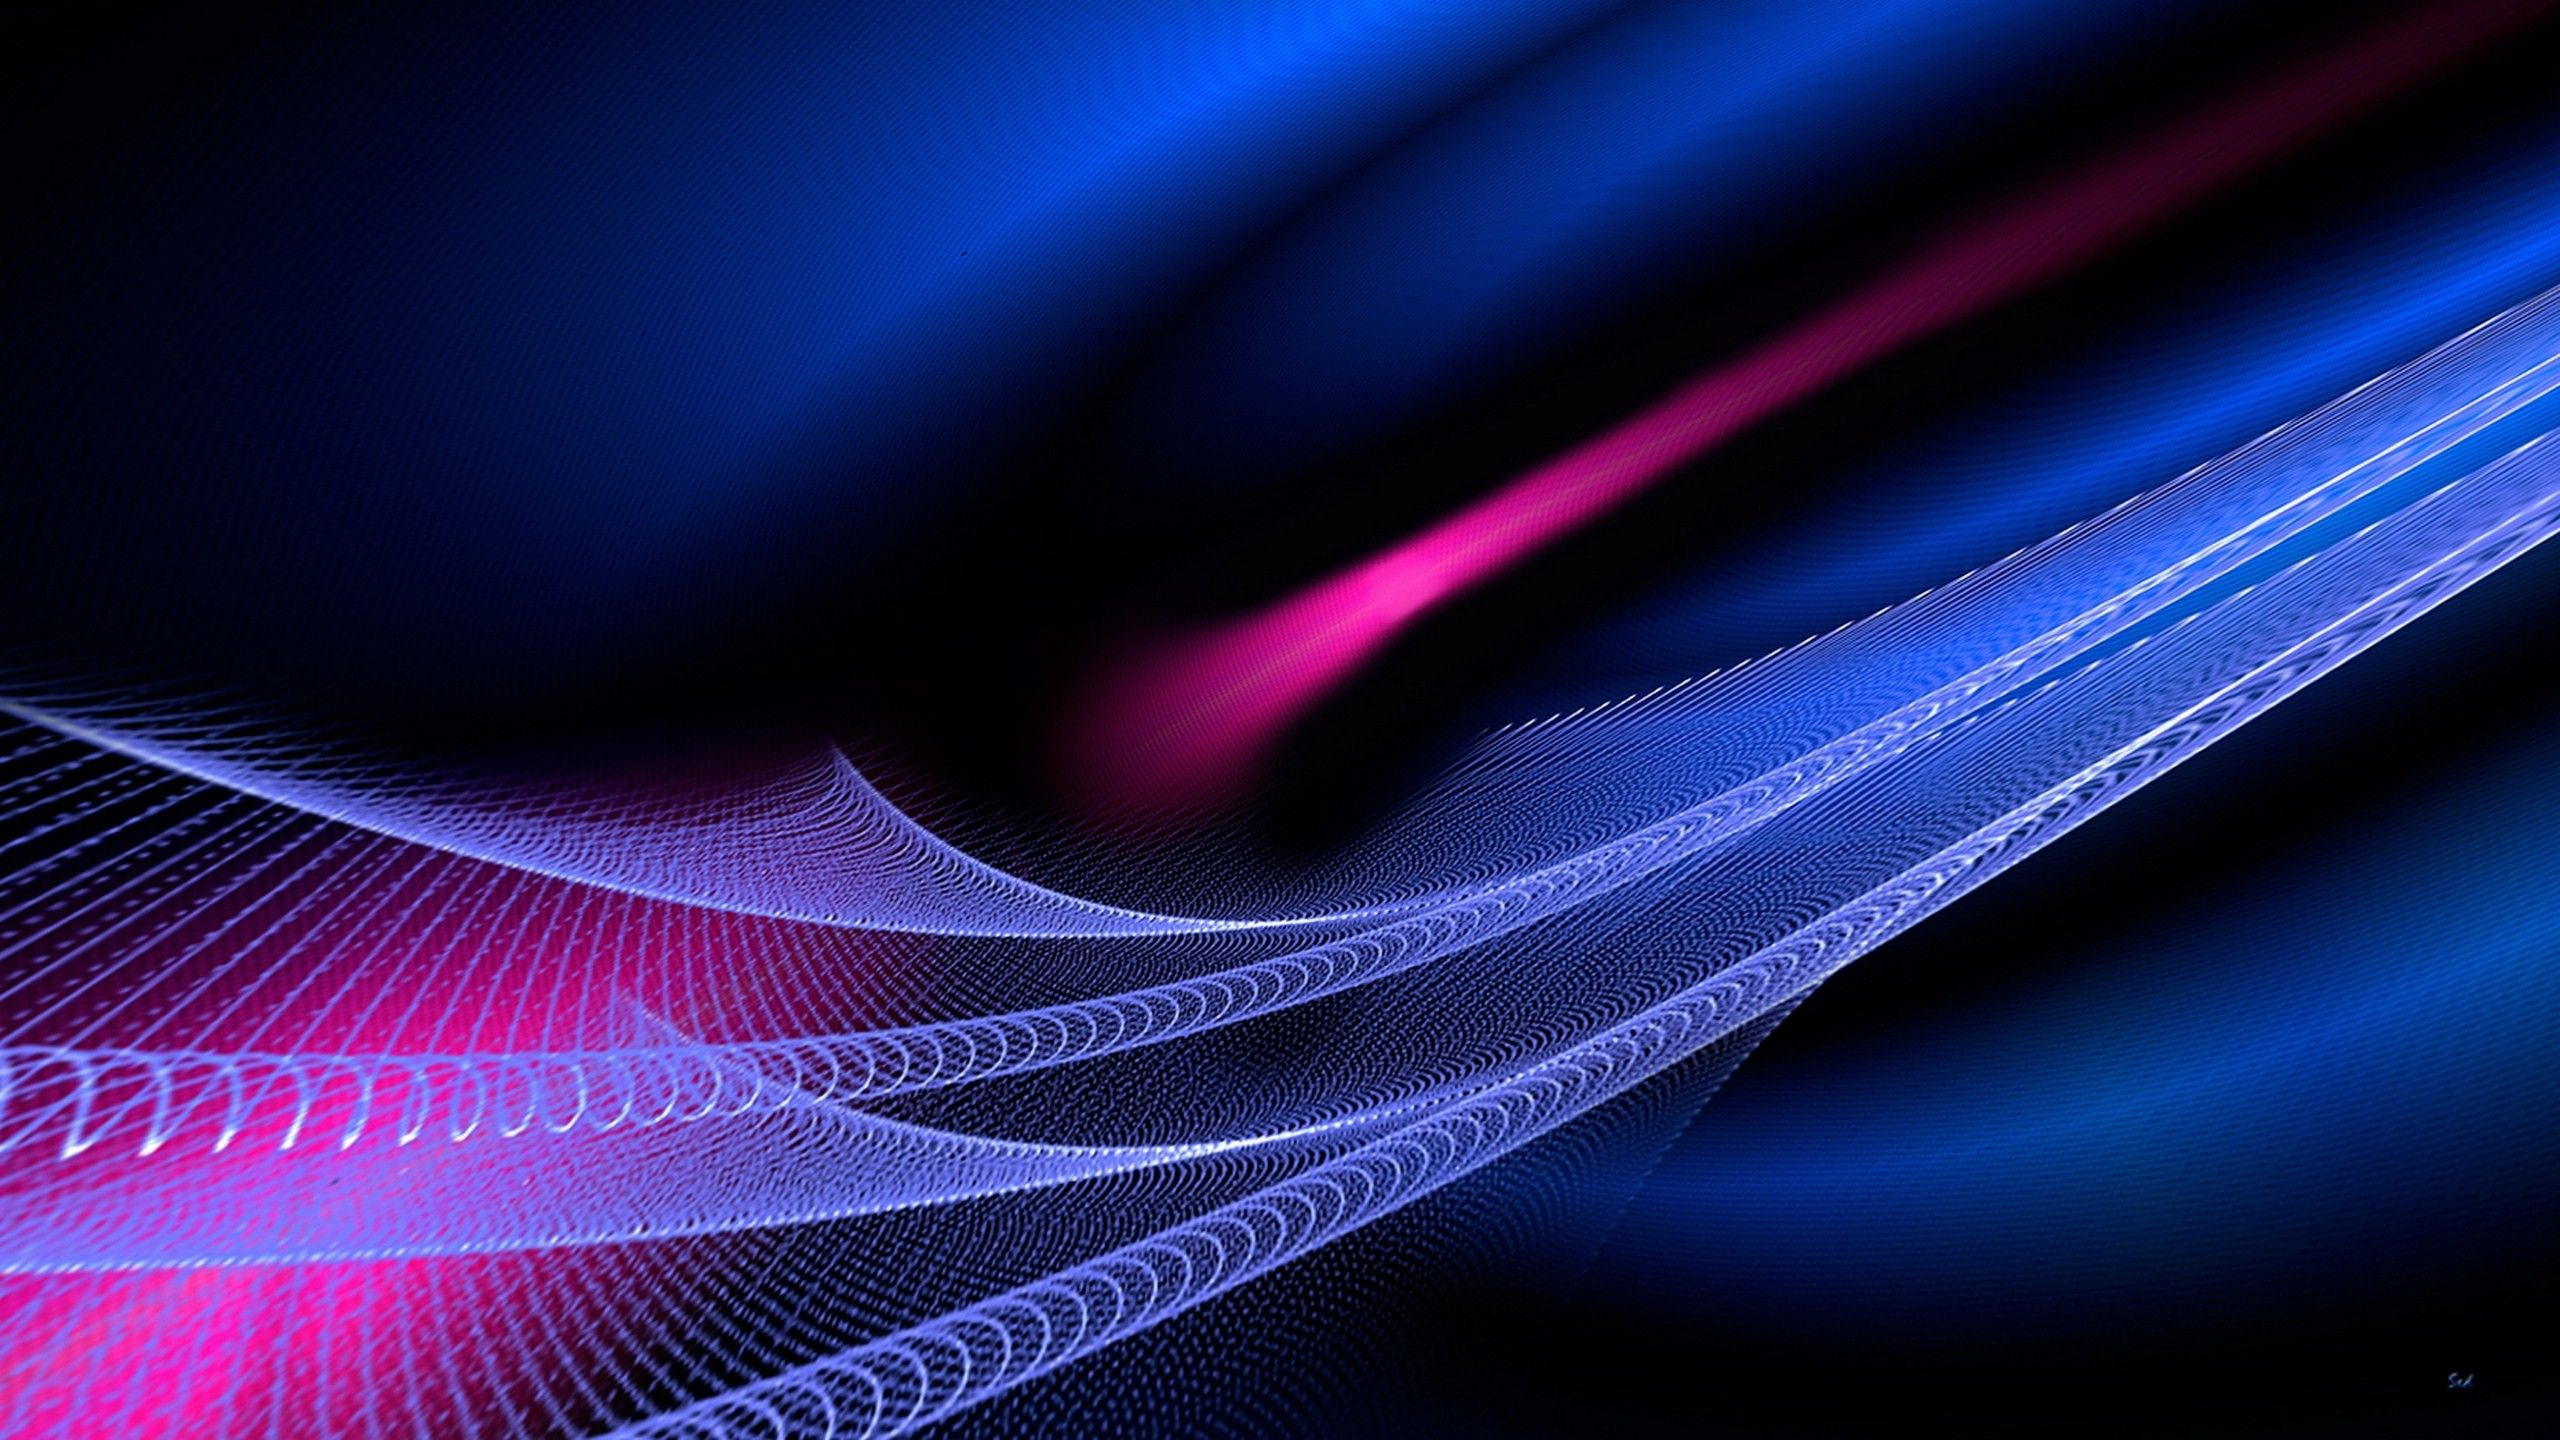 Pics photos 3d colorful abstract background design - Electromagnetic Wallpaper Google Search